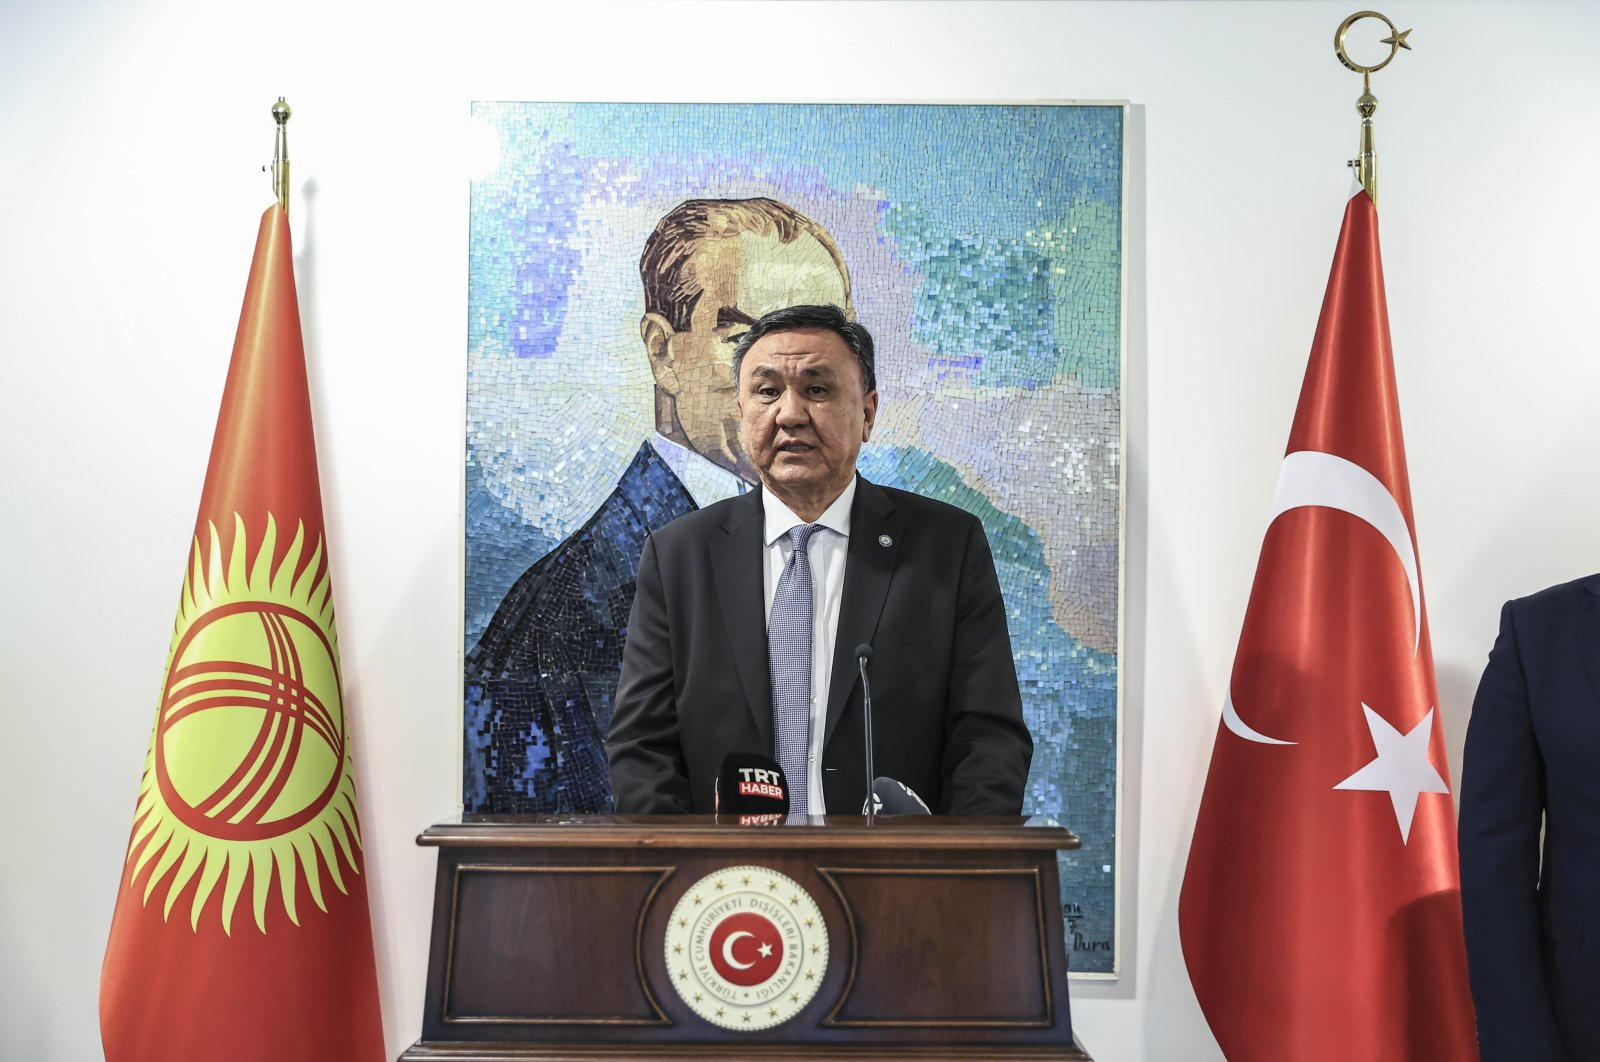 Kyrgyz Ambassador Kubanychbek Omuraliev speaks at an exhibition to mark the 30th anniversary of the independence of Kyrgyzstan, in Turkey's capital Ankara, July 6, 2021. (AA Photo)